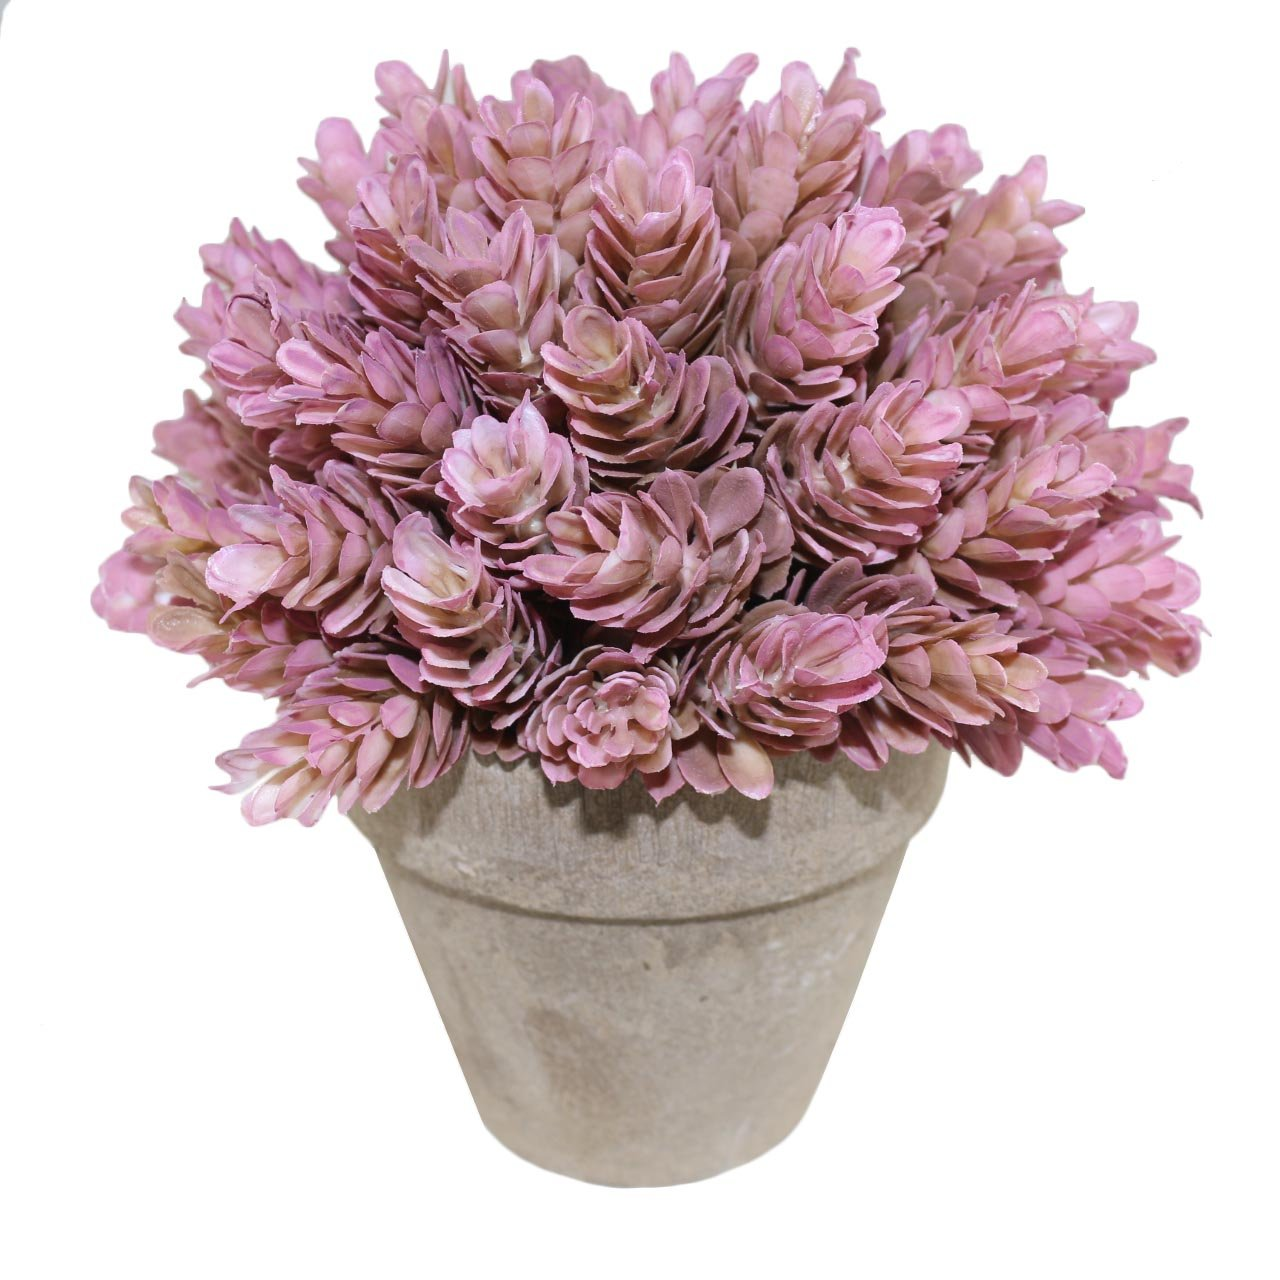 Kumii Small Artificial Topiary Plastic Plant in Pot, 7 inch Desk Bedroom Decoration, Fake Flower, (Pink Pineapple Grass)